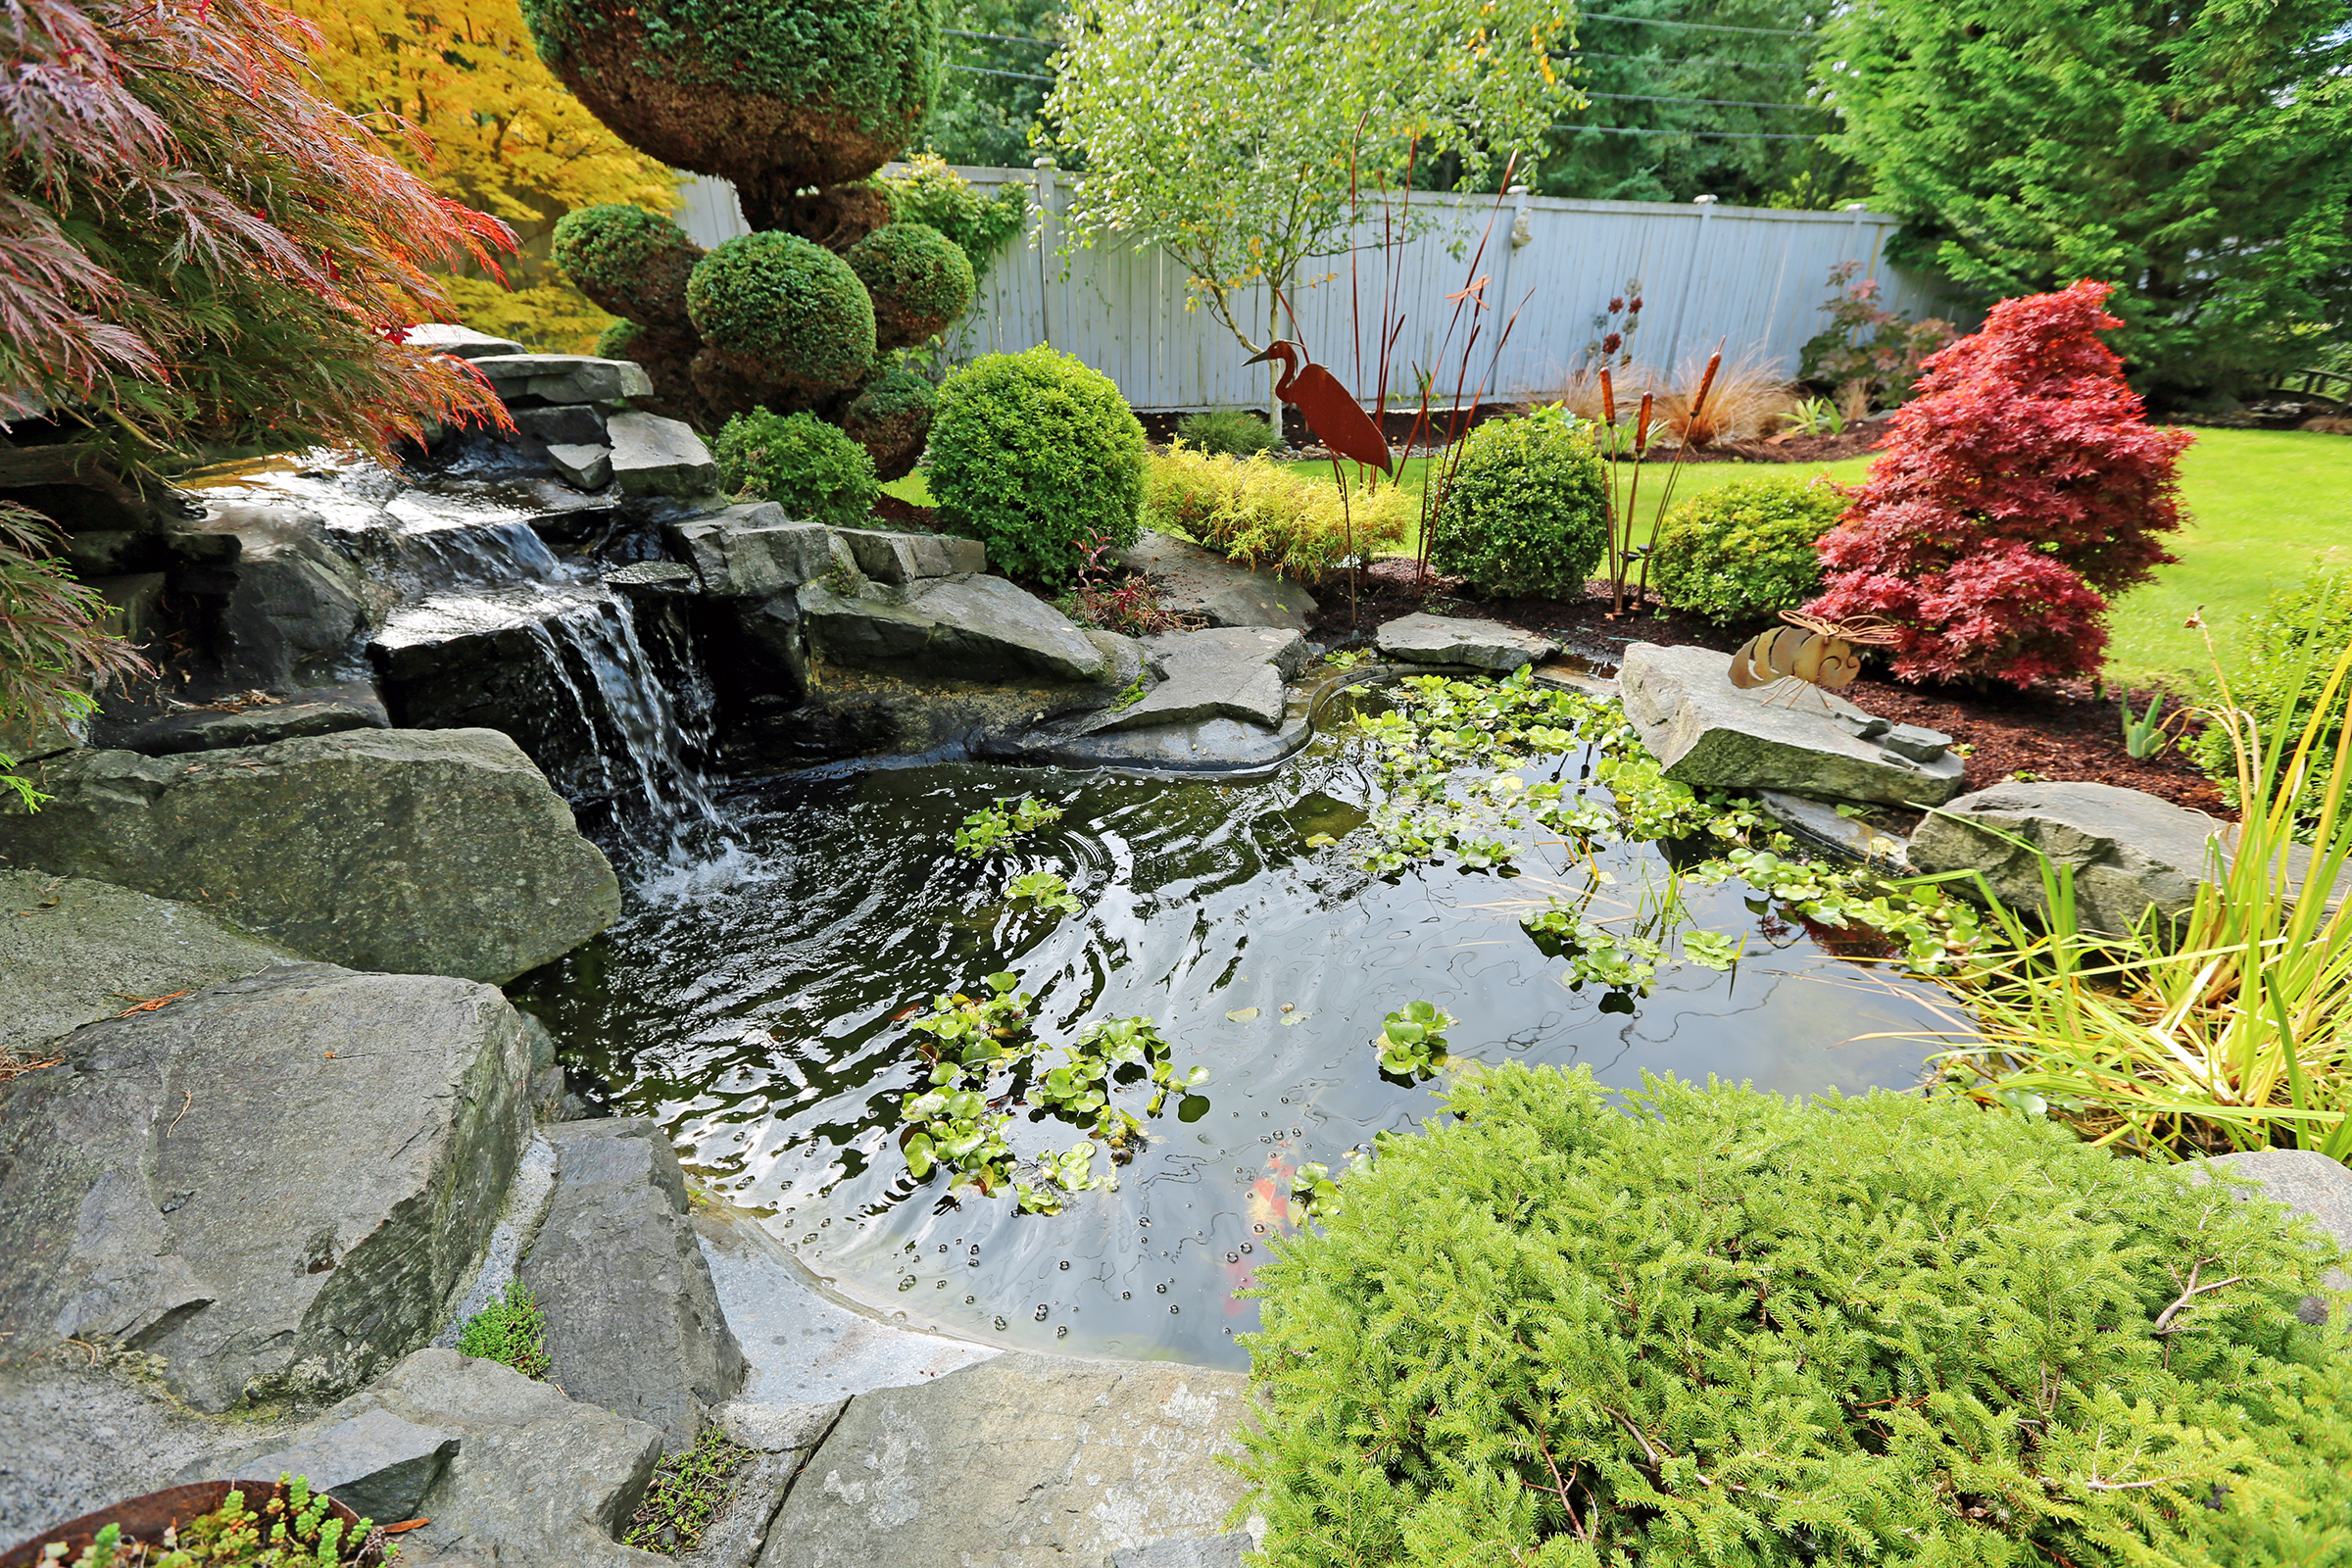 Tropical landscape design in backyard. View of small pond, trimmed bushes and small waterfall